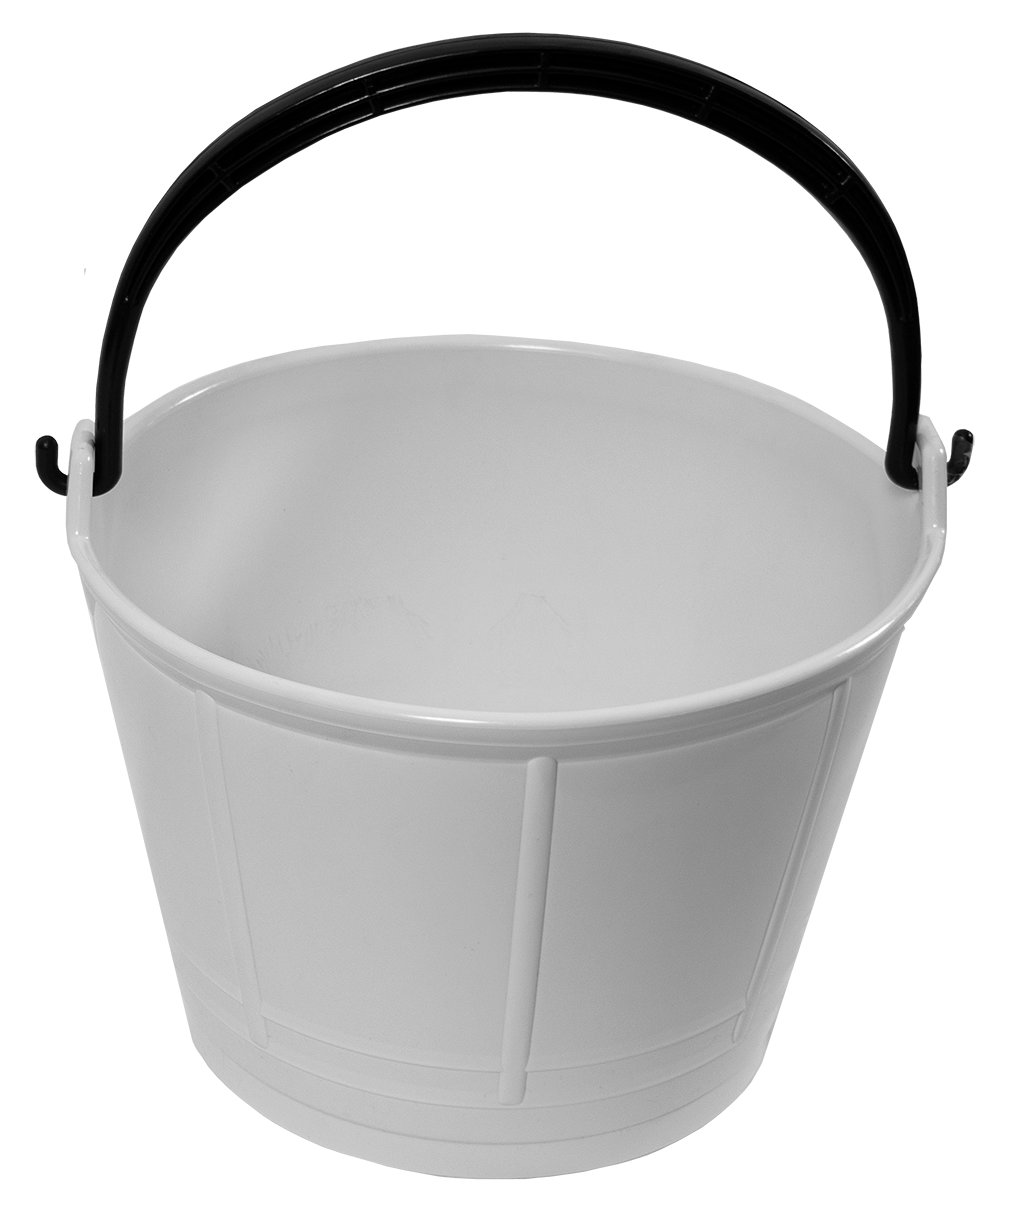 Builders bucket ITM